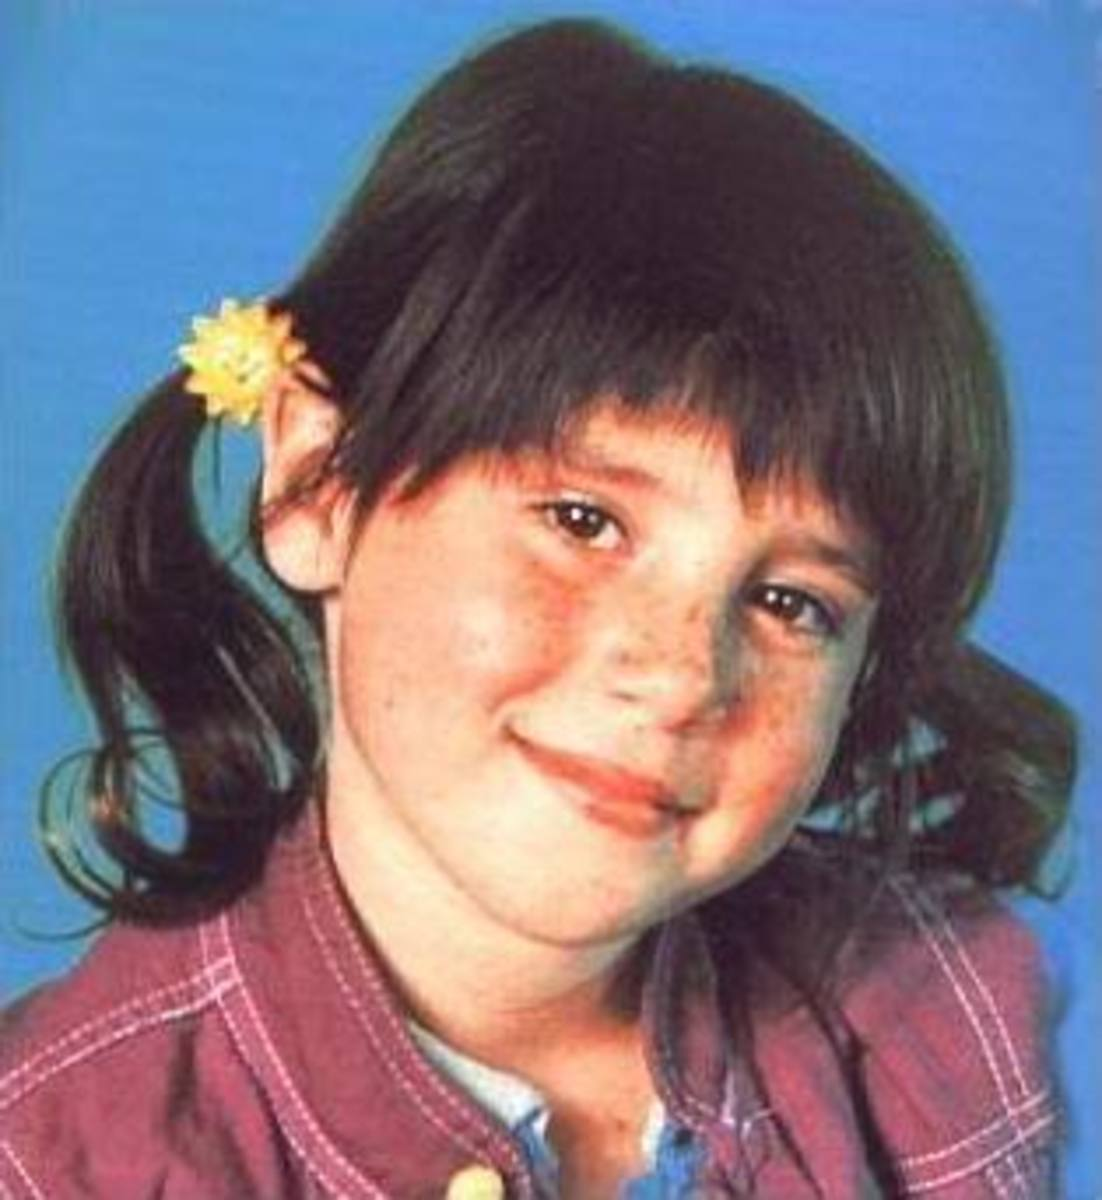 punky-brewster-is-an-80s-sitcom-icon